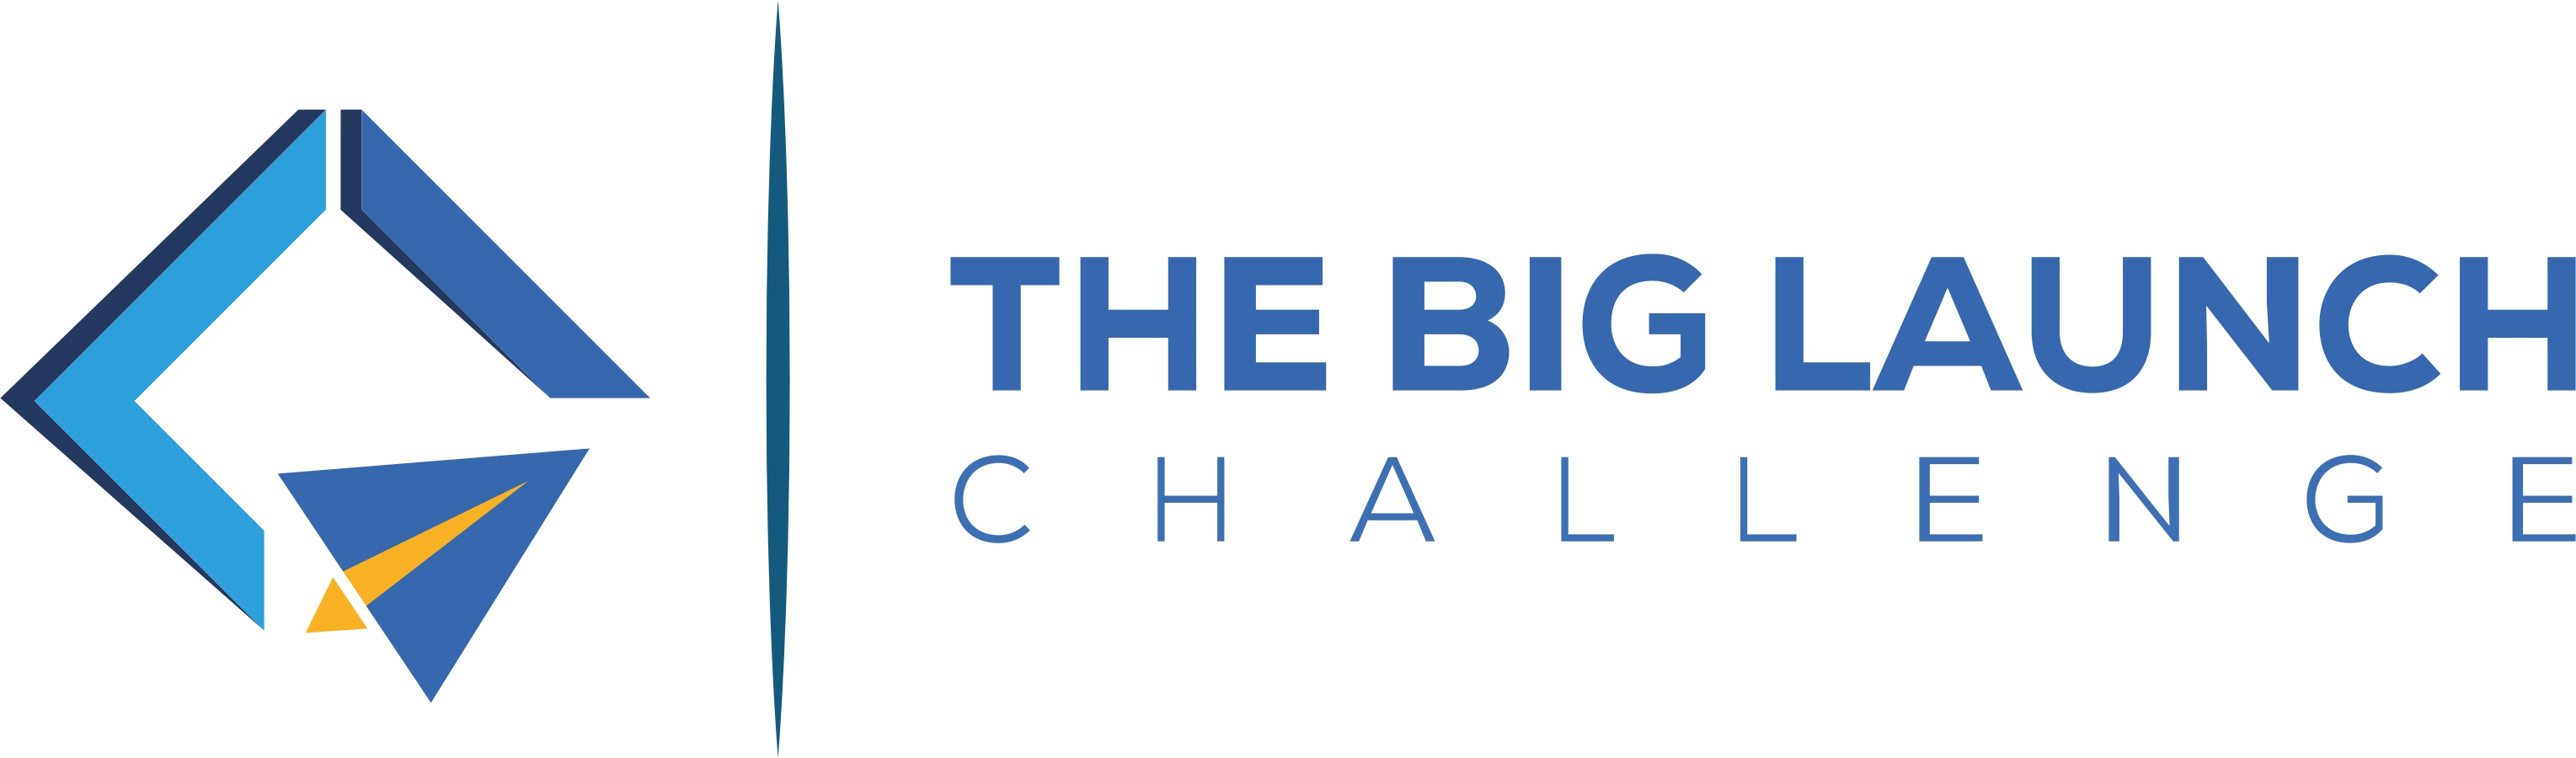 The Big Launch Challenge